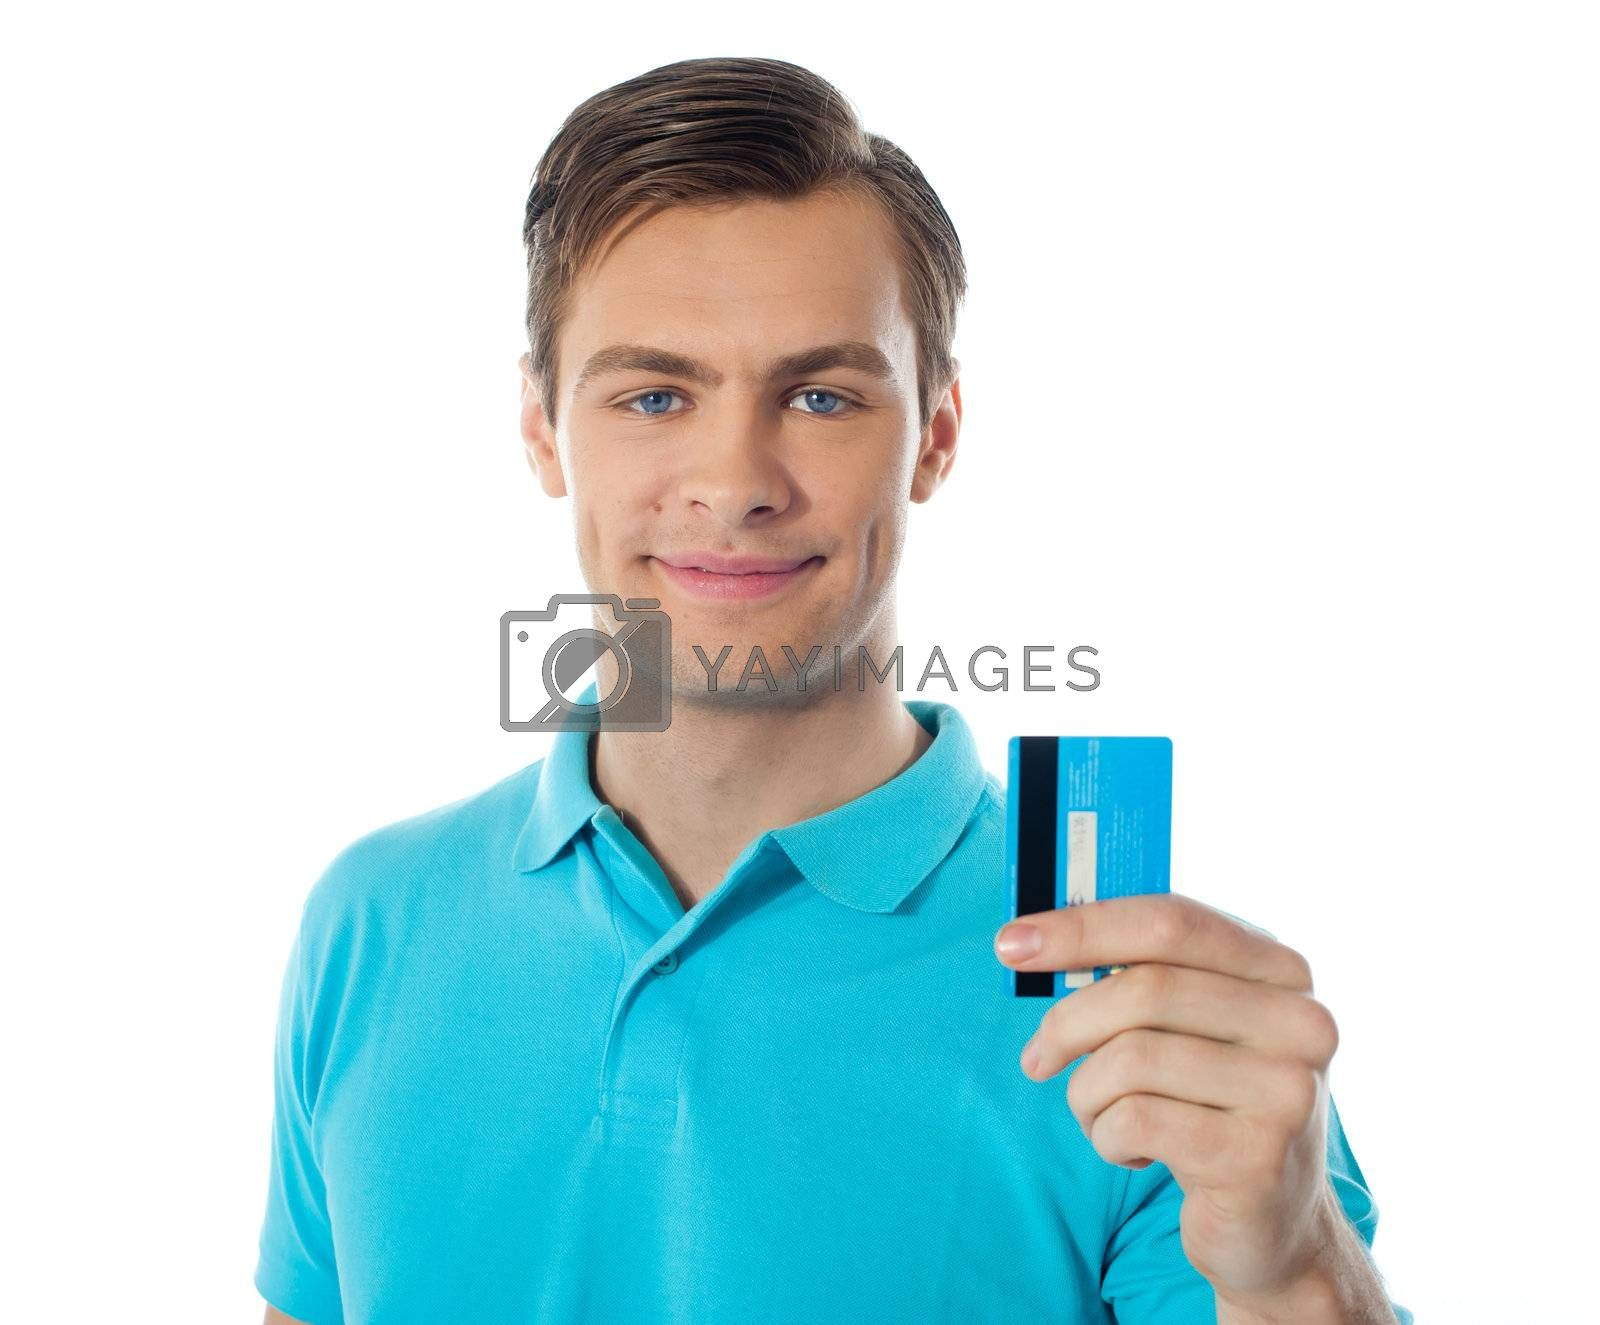 Handsome guy holding credit card and showing to camera